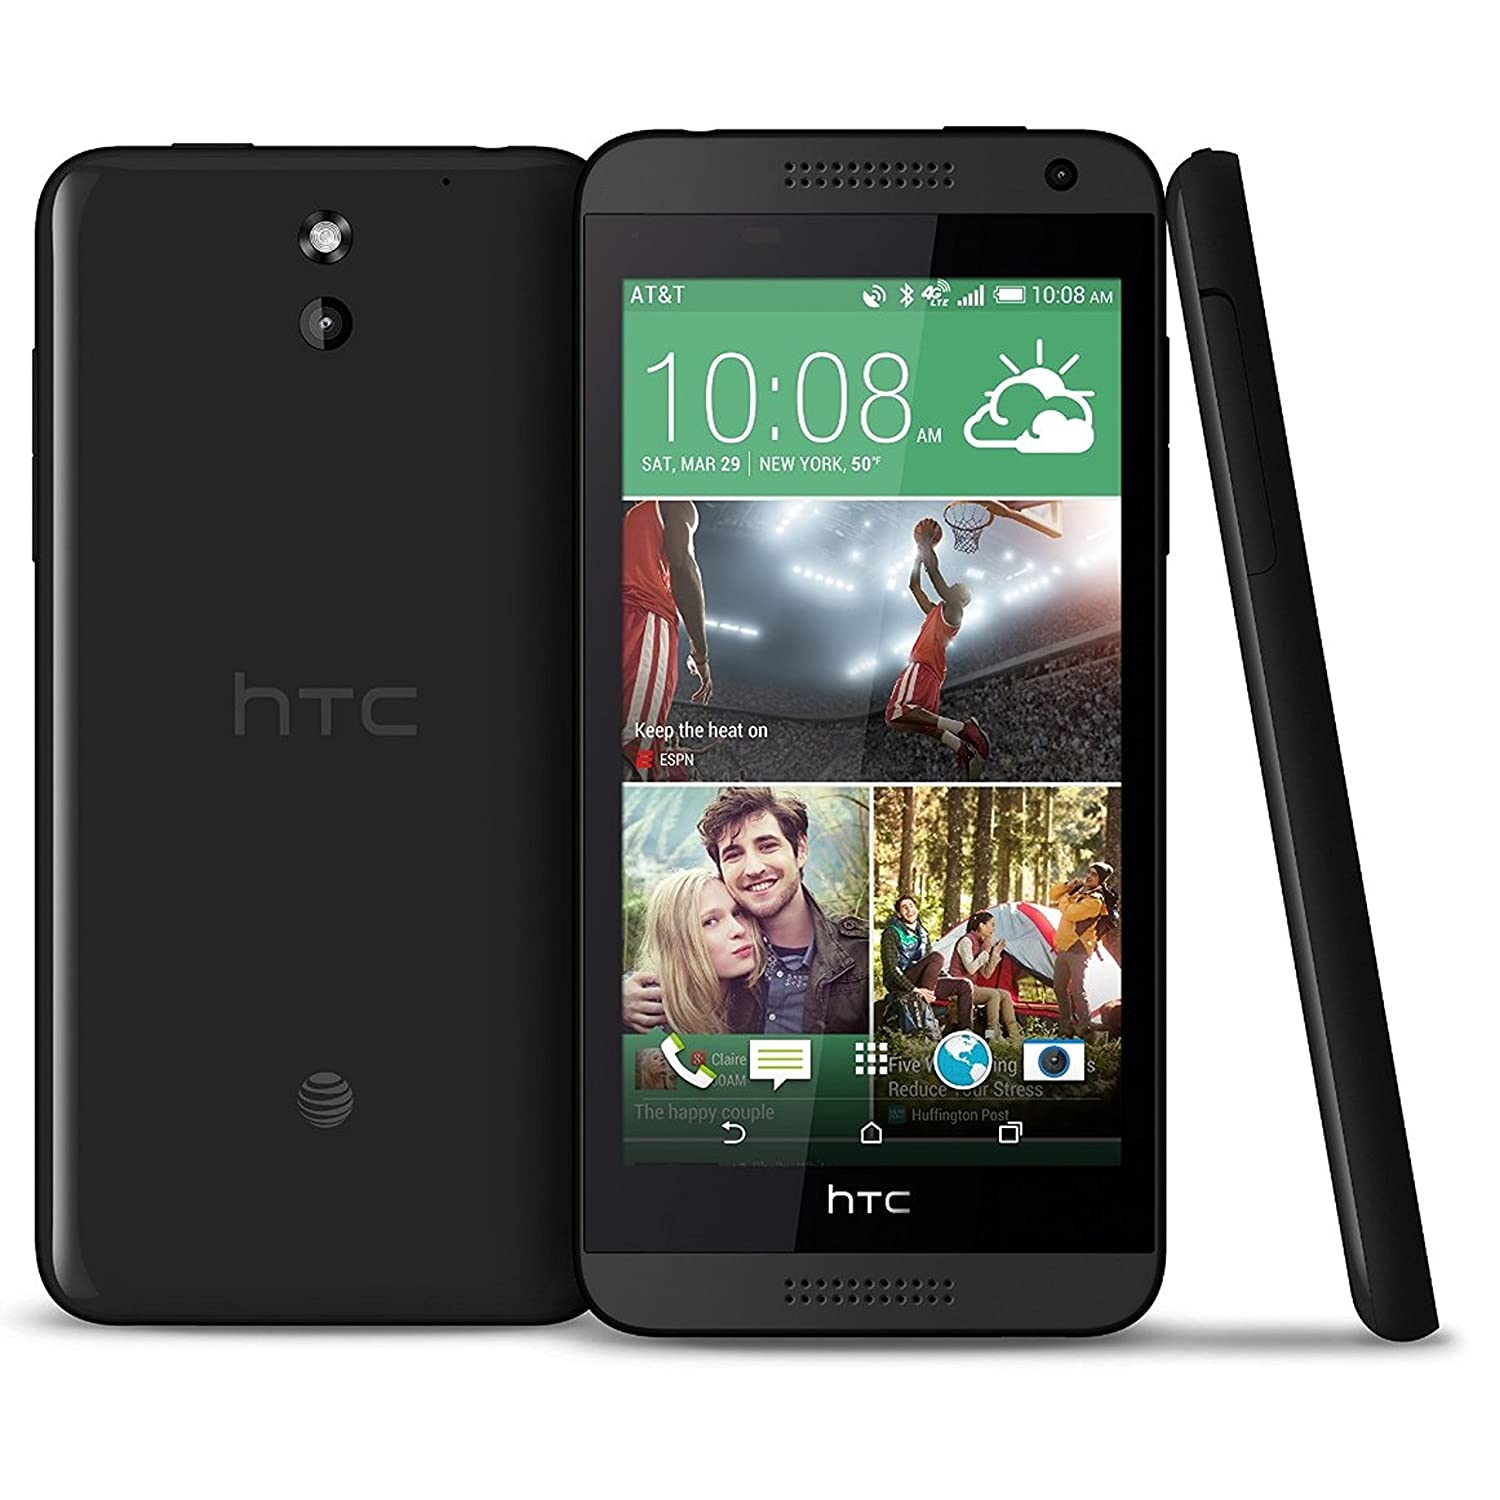 Review of the smartphone HTC Desire 610, customer reviews